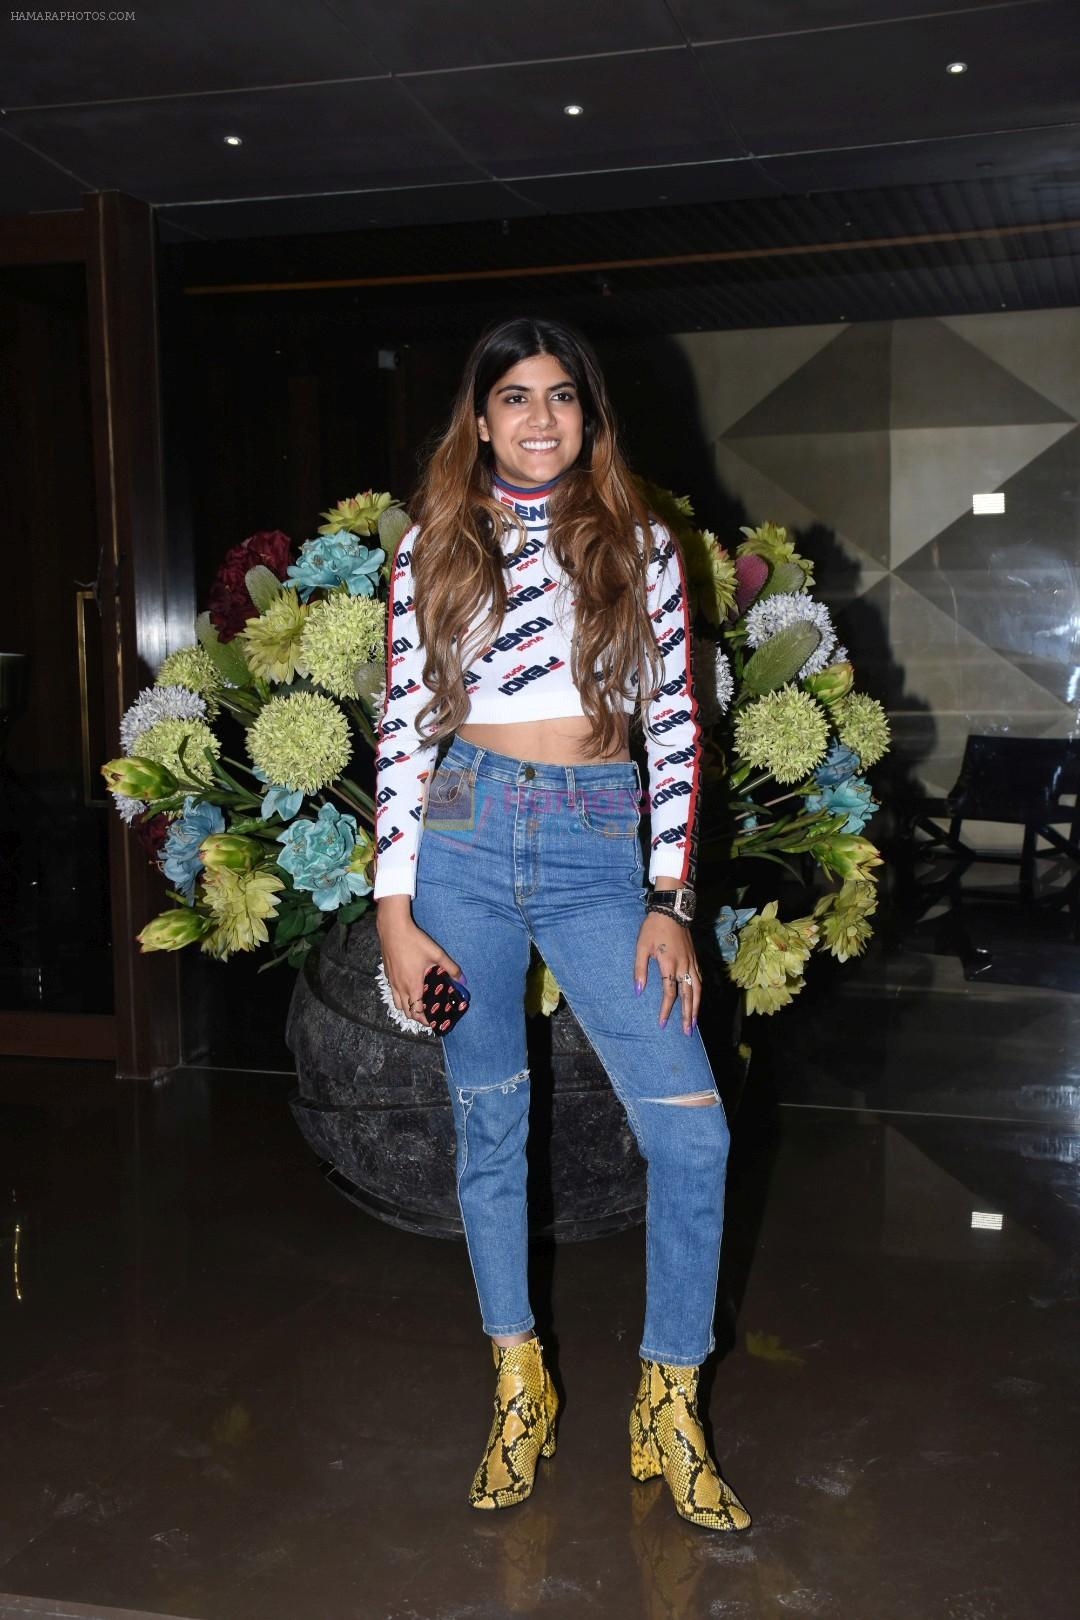 at Jacky Bhagnani's party at bandra on 5th Aug 2019